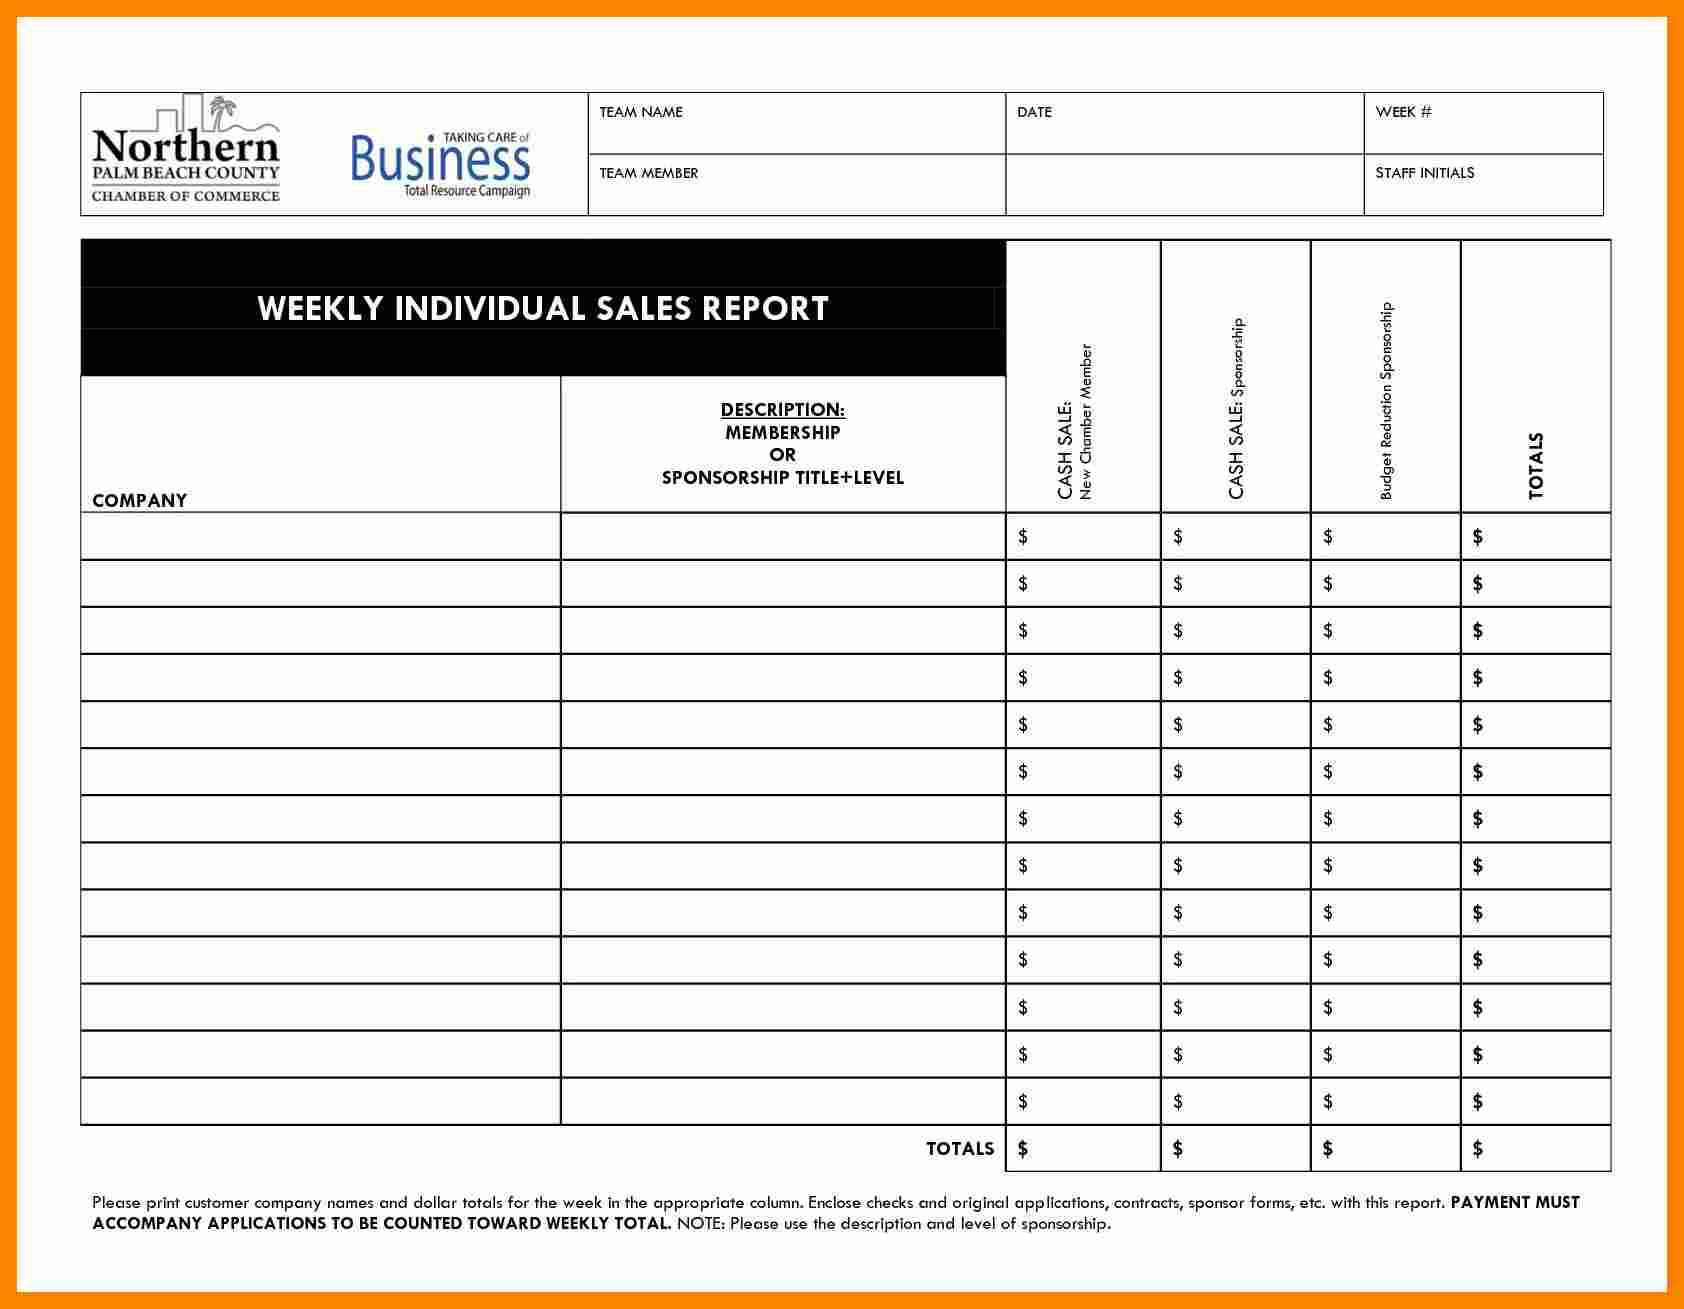 023 Template Ideas Sales Call Reporting Weekly Report in Sales Call Reports Templates Free